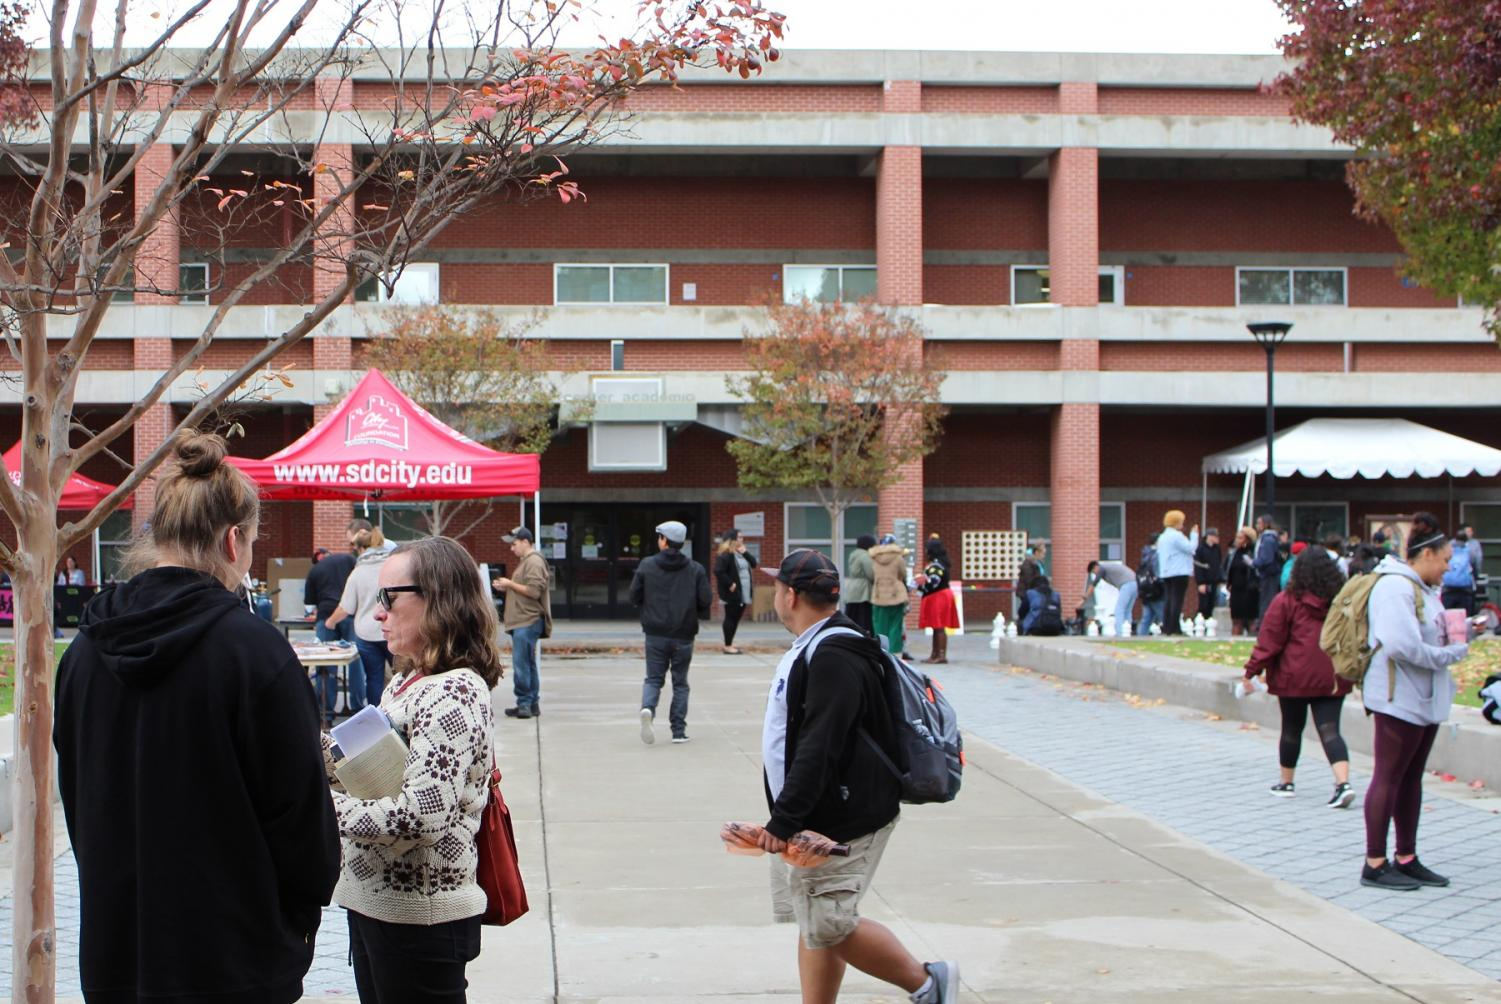 City College clubs and organizations will be out on campus tabling and offering information to students like they did in the Fall 2018 semester's Block Party. By Jonny Rico/City Times